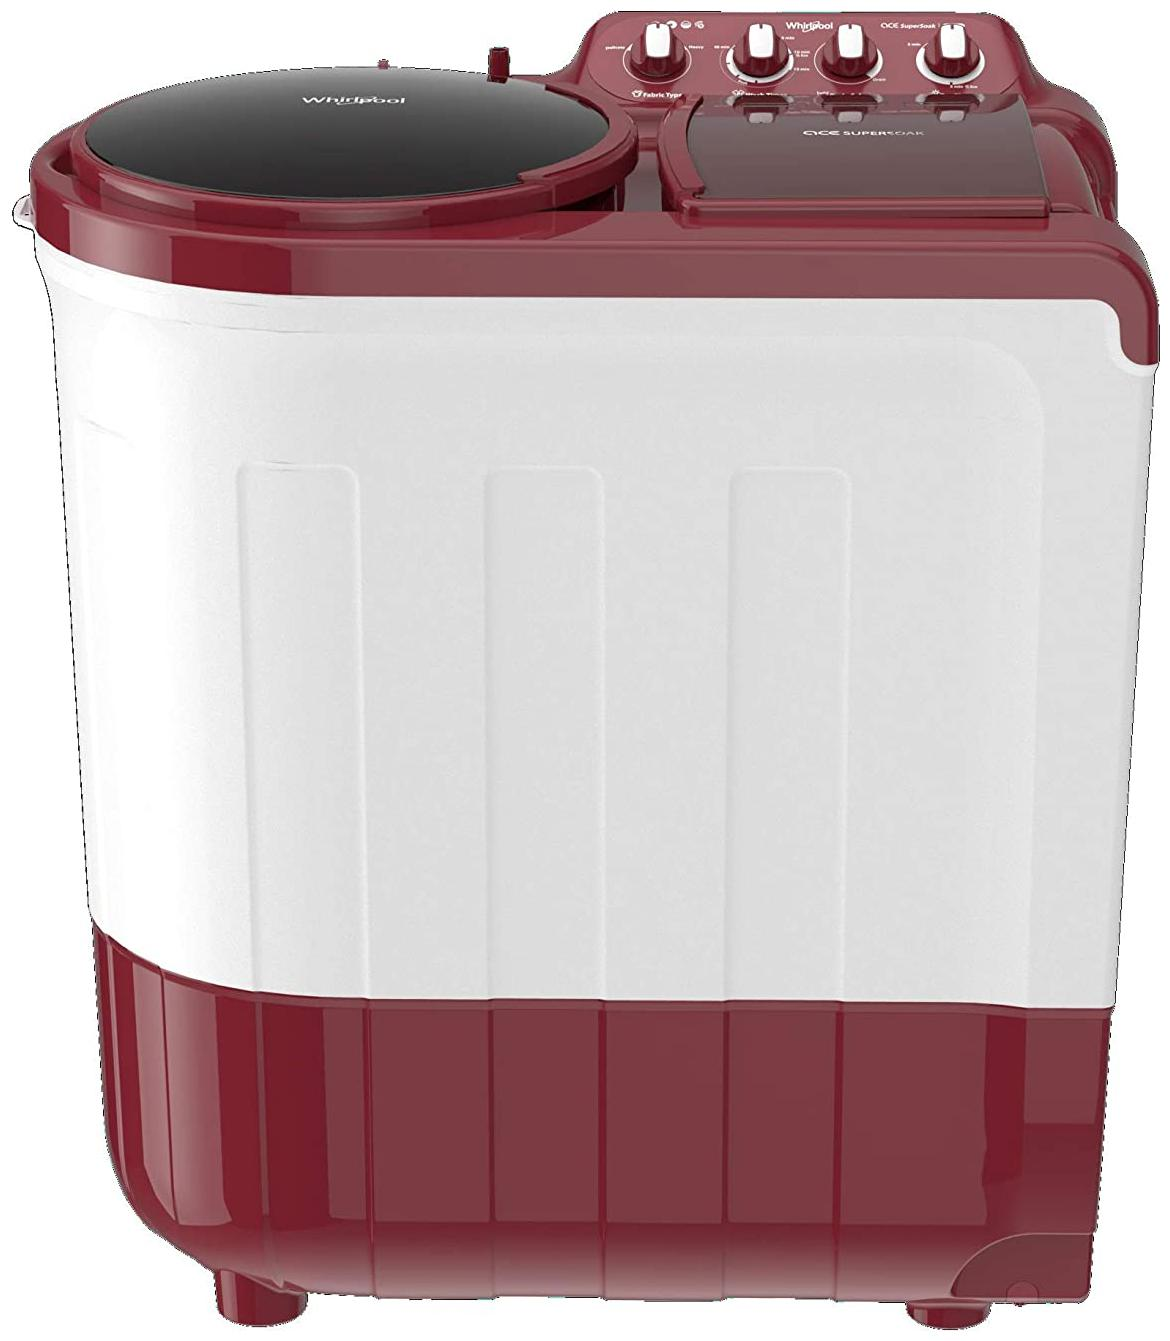 Whirlpool 8.5 kg Semi Automatic Top Load Washing machine   ACE 8.5 SUPERSOAK , Coral red